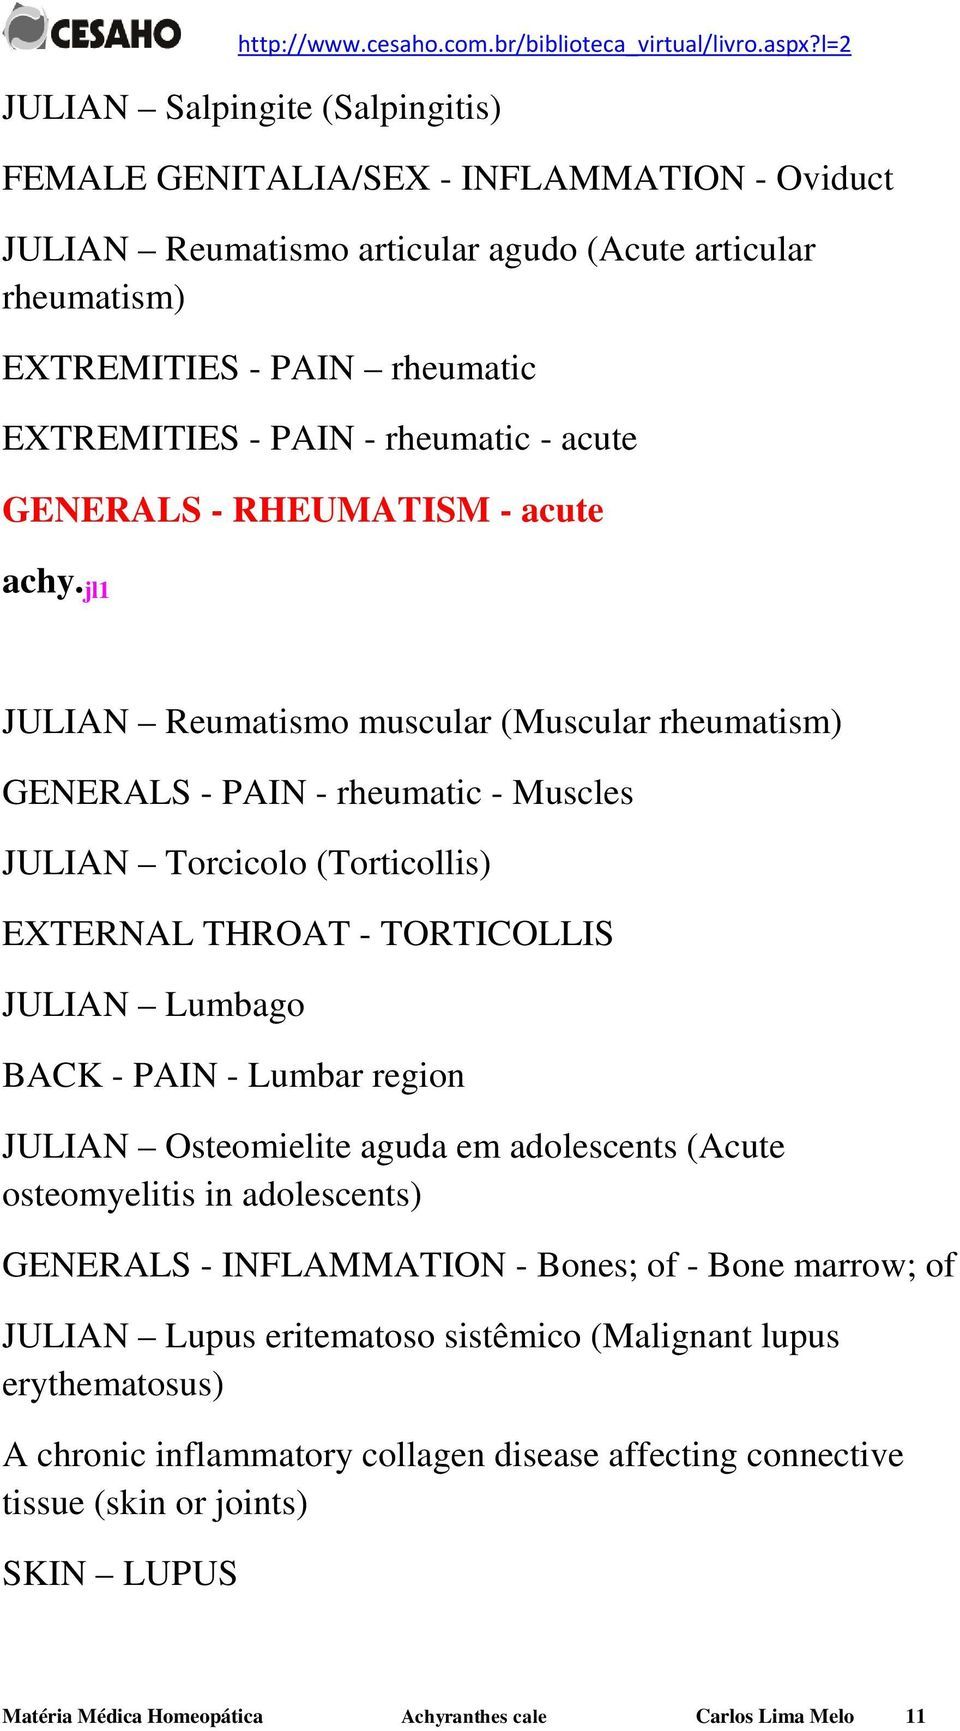 JULIAN Lumbago BACK - PAIN - Lumbar region JULIAN Osteomielite aguda em adolescents (Acute osteomyelitis in adolescents) GENERALS - INFLAMMATION - Bones; of - Bone marrow; of JULIAN Lupus